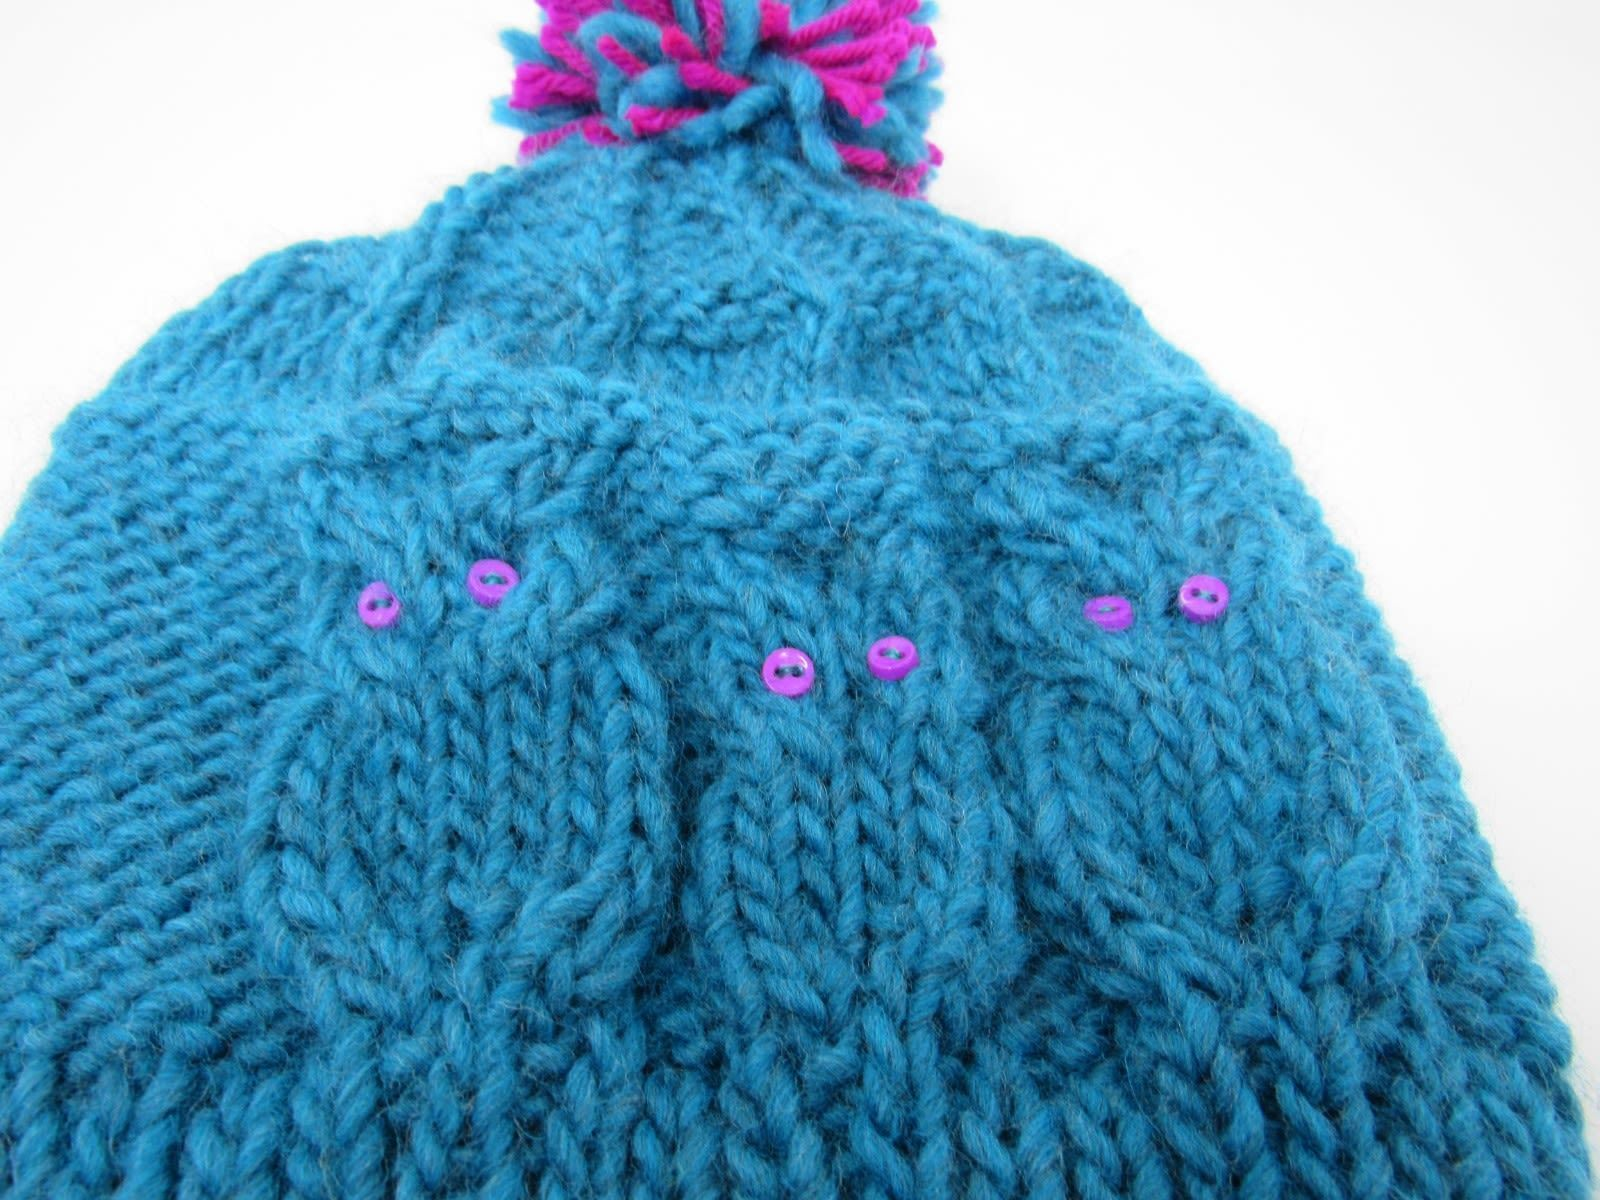 Handcrafted Knitted Hat Teal/Fuchsia Owl 100% Merino Wool Female Kids 4-6